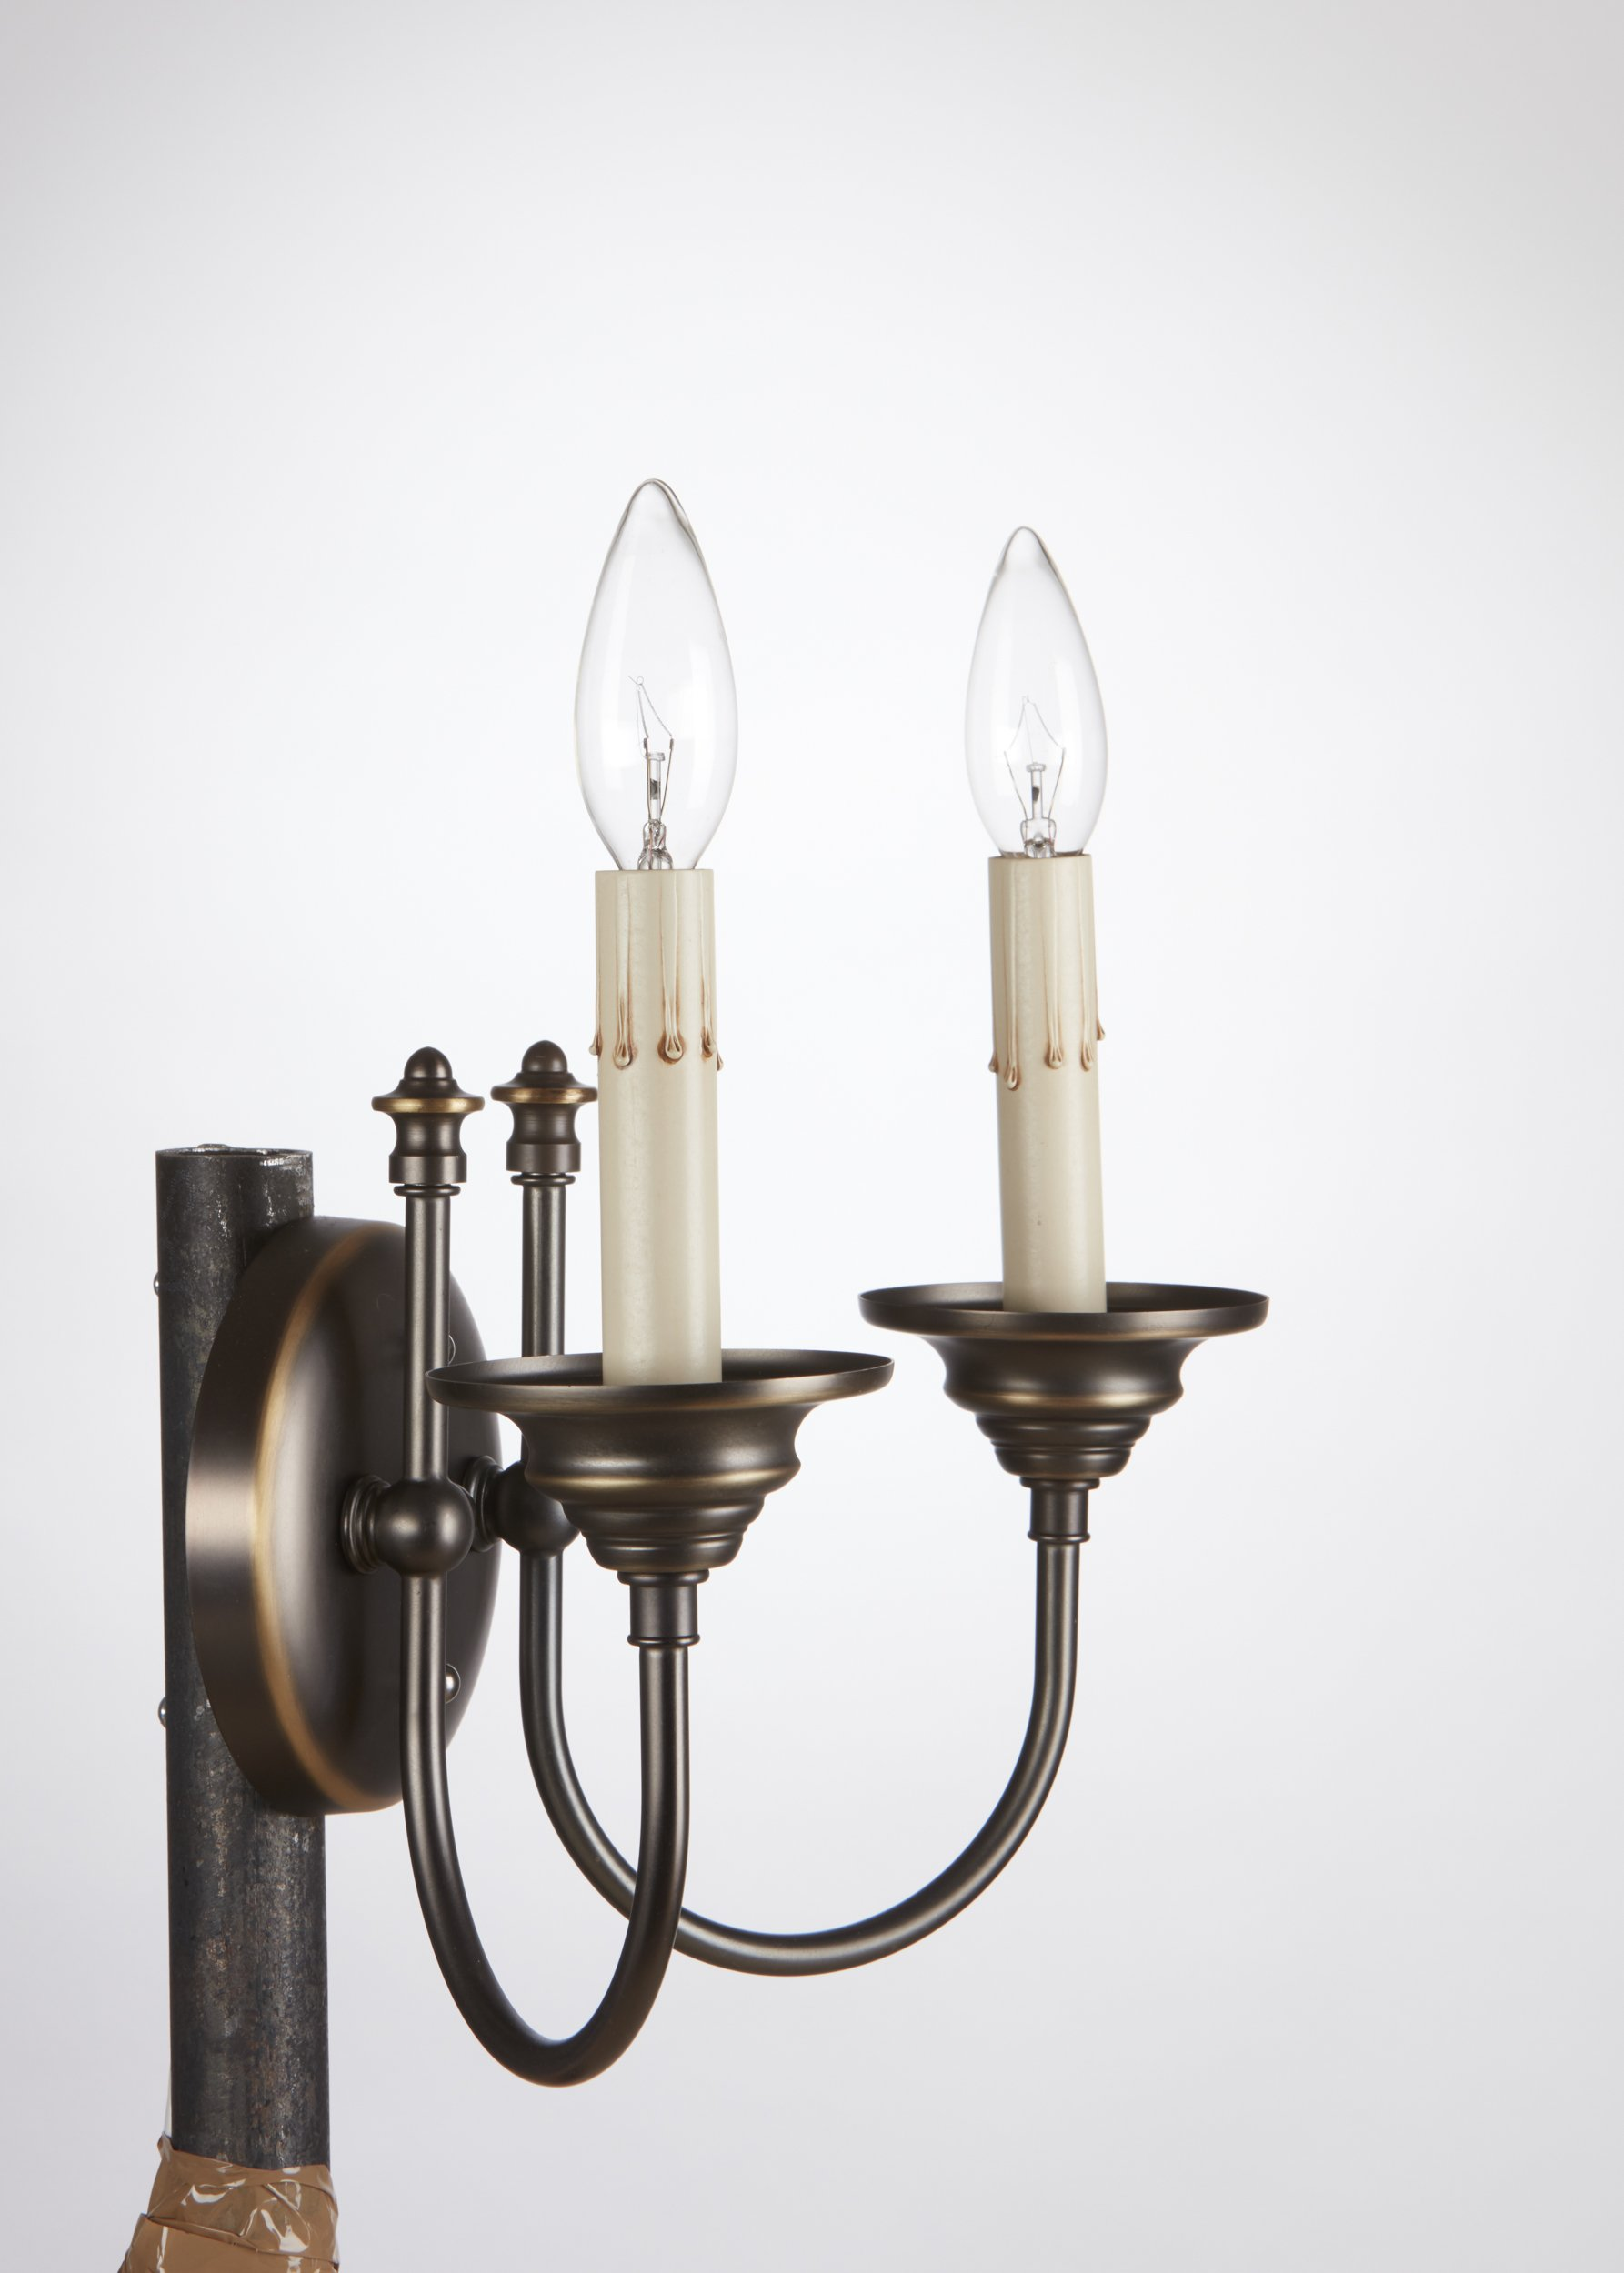 Upgradelights Ivory Fibre Drip 6 Inch Candle Socket Covers (Set of 6) by Upgradelights